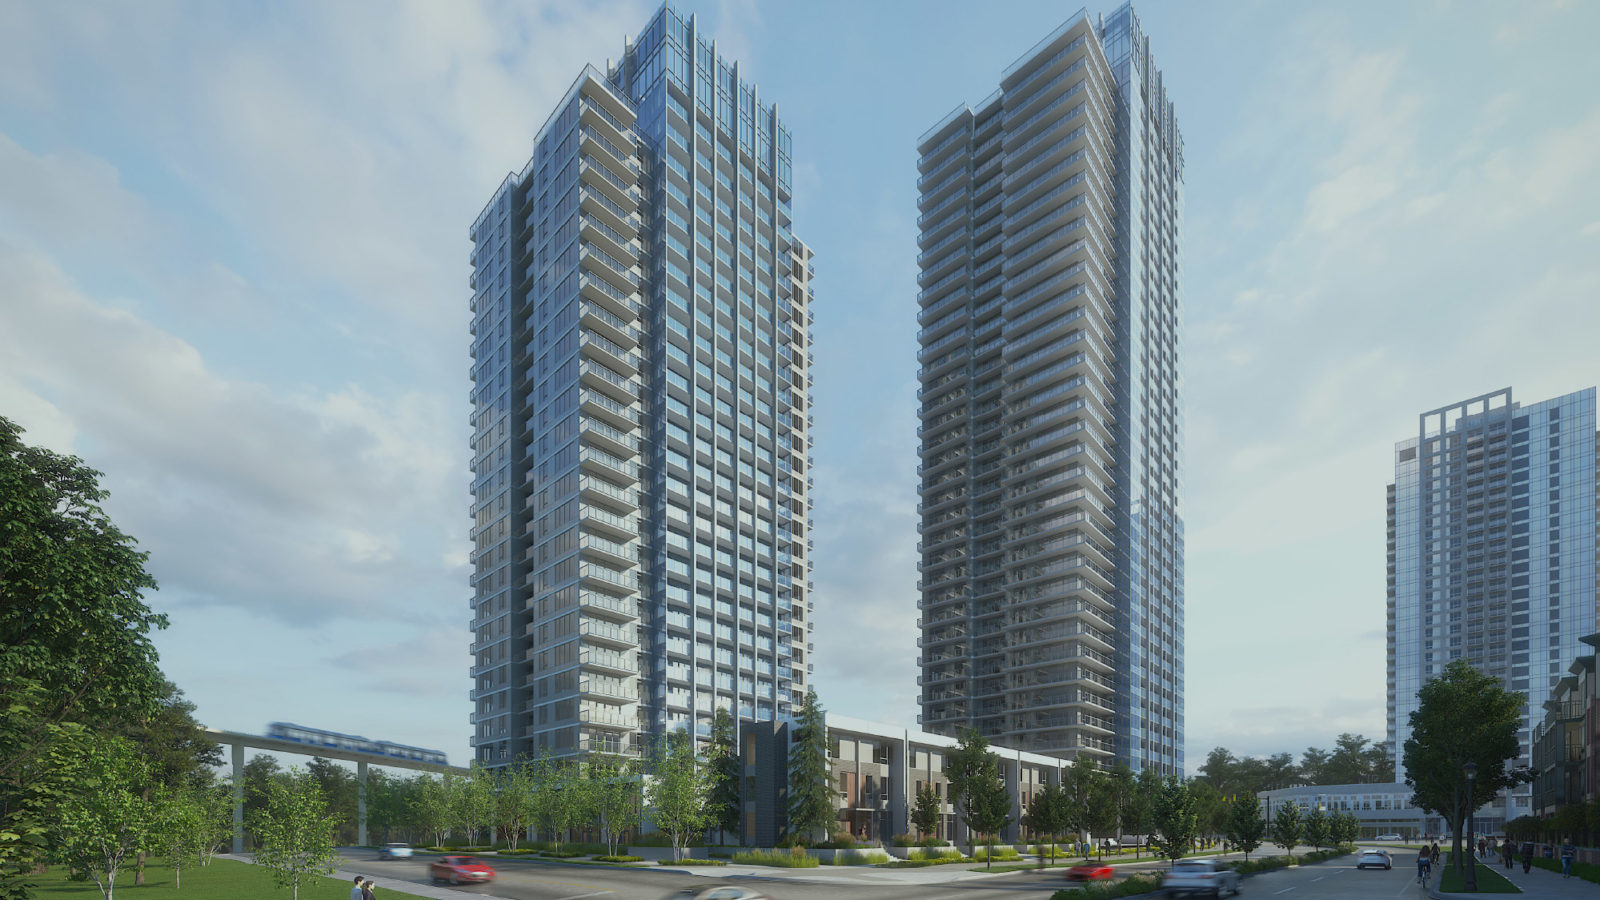 University District 2 in surrey Central condo development on sale